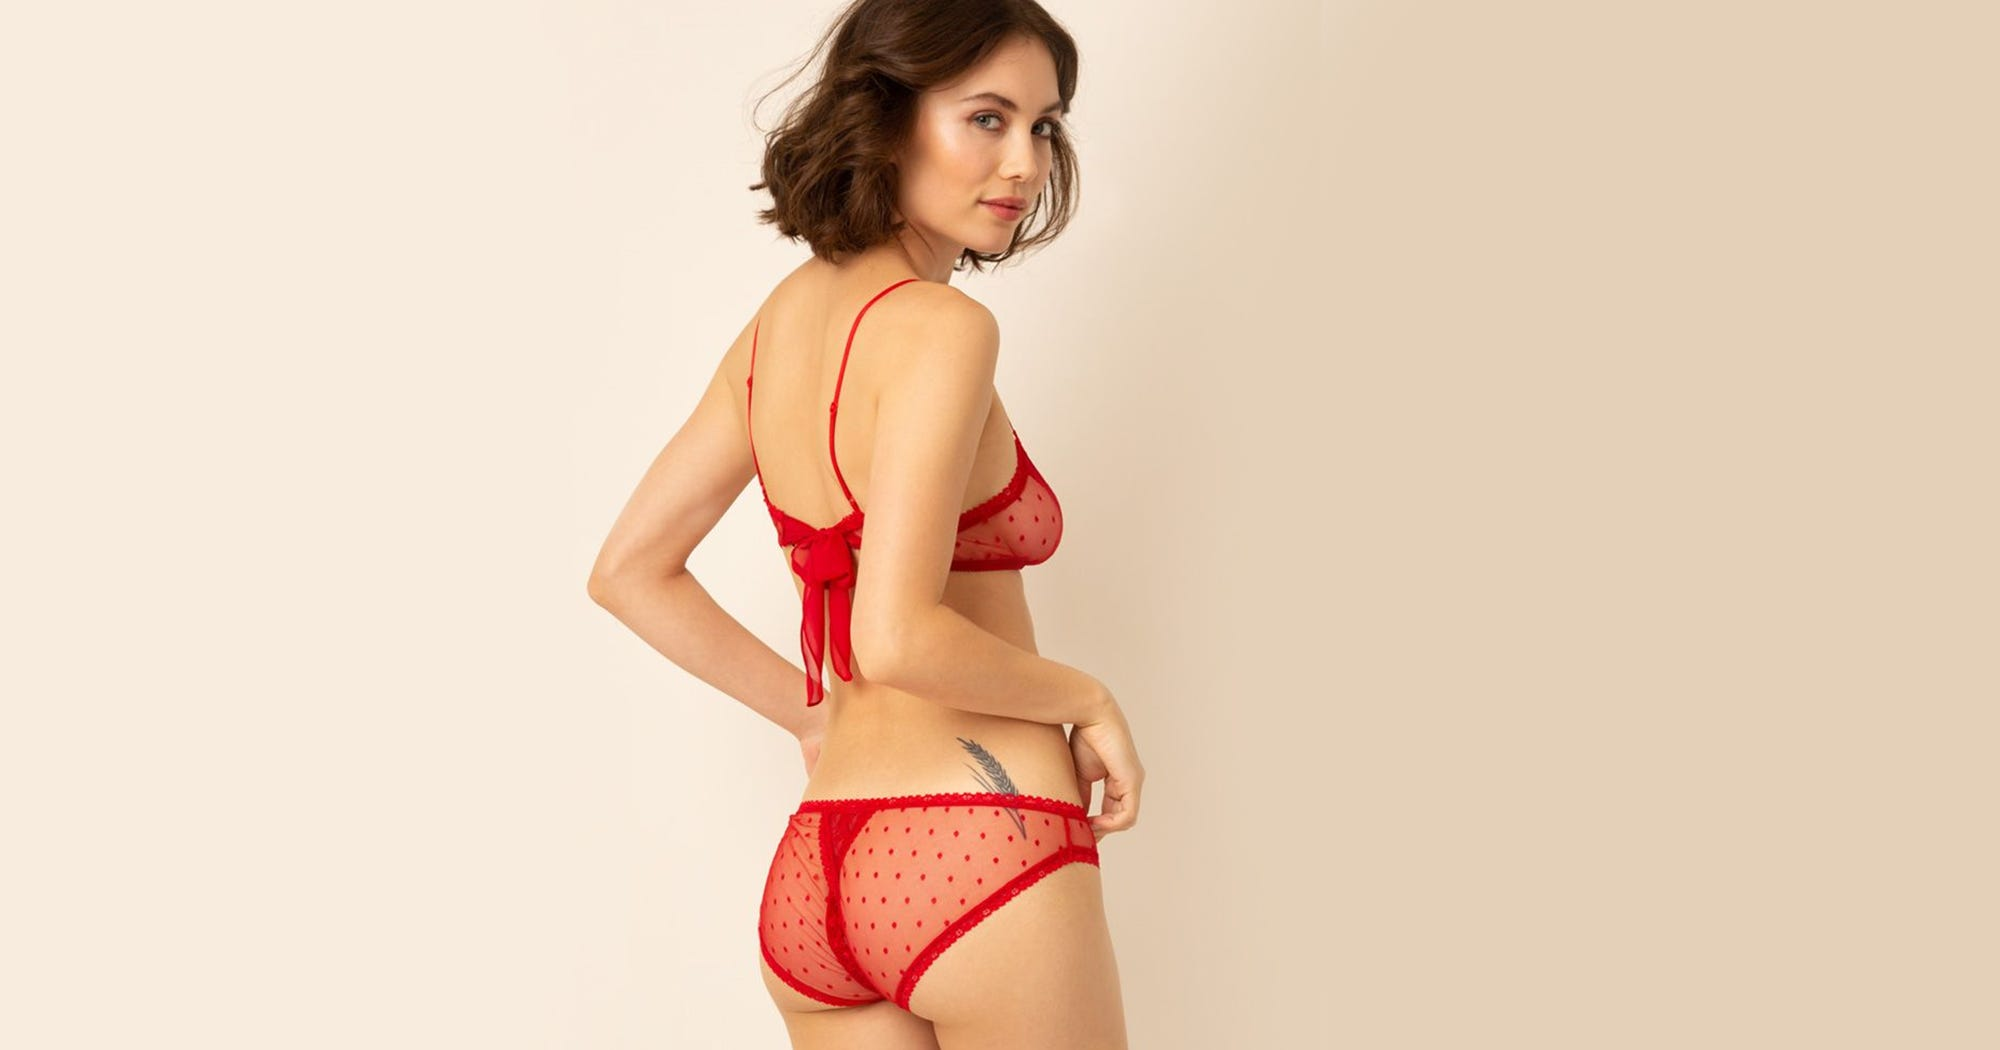 Red Hot Lingerie To Buy Just In Time For Valentine's Day